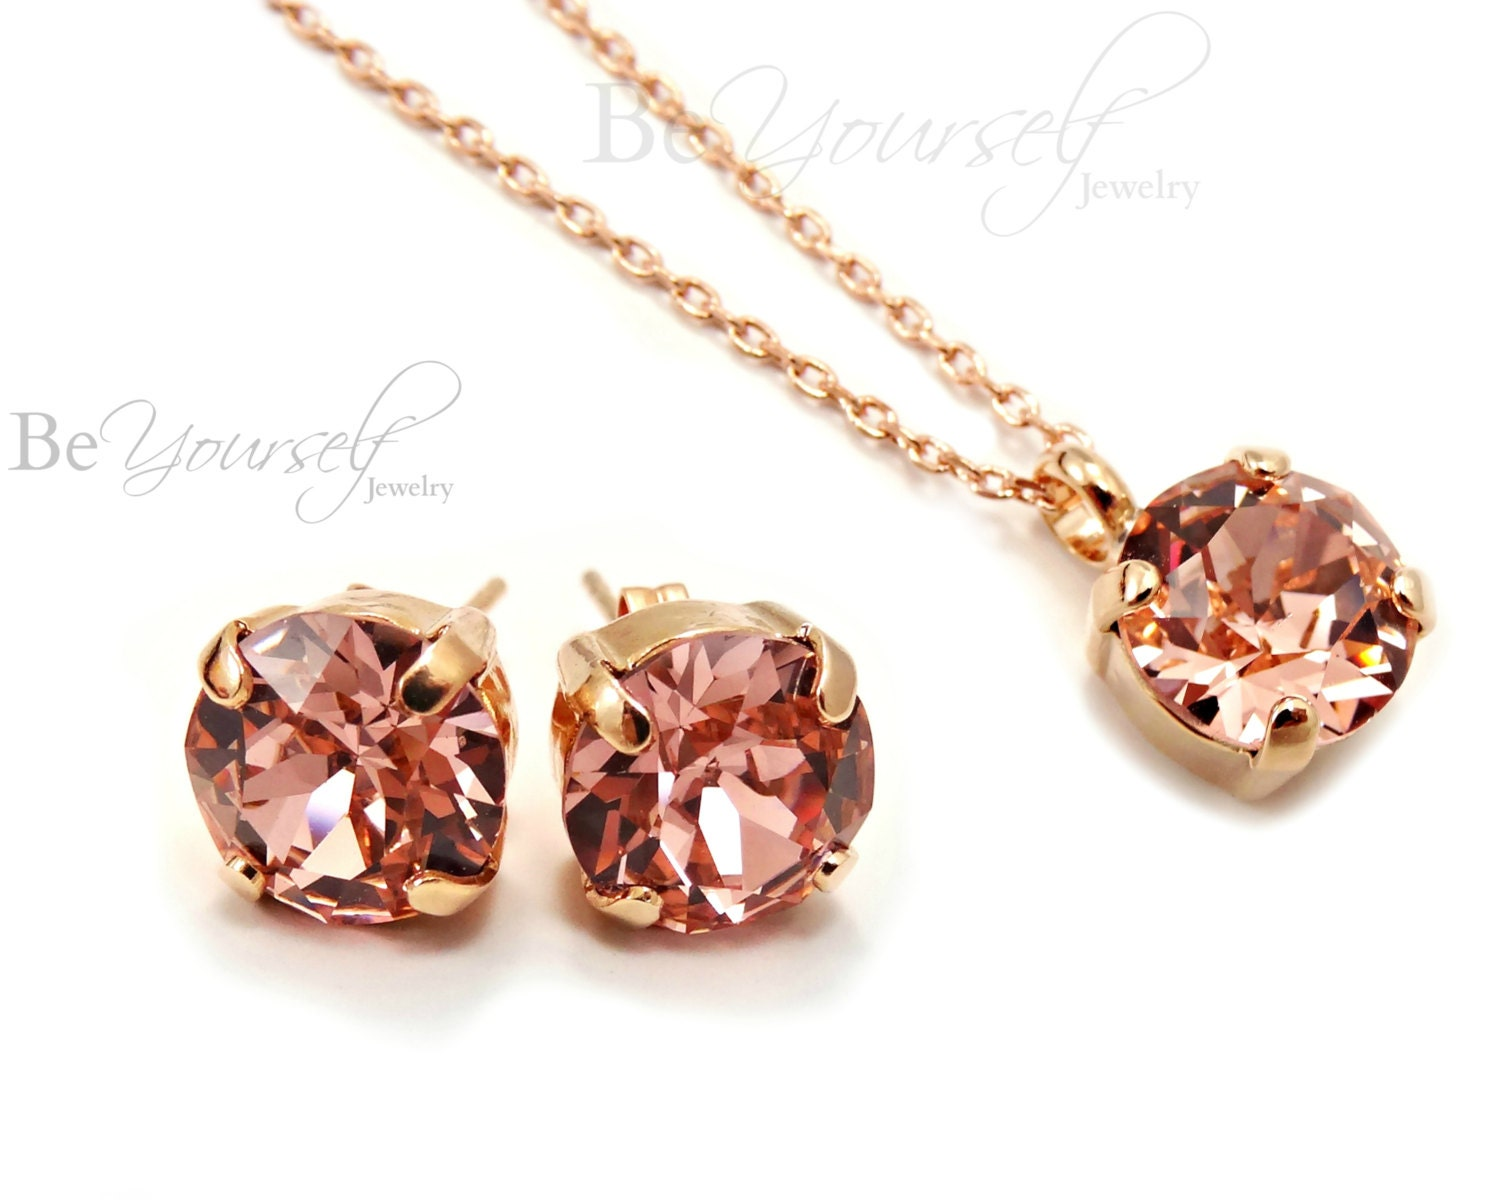 Blush Bridal Studs Rose Gold Bride Earrings Pastel Pink Wedding Necklace Swarovski Crystal Vintage Rose Solitaire Jewelry Bridesmaid Gift